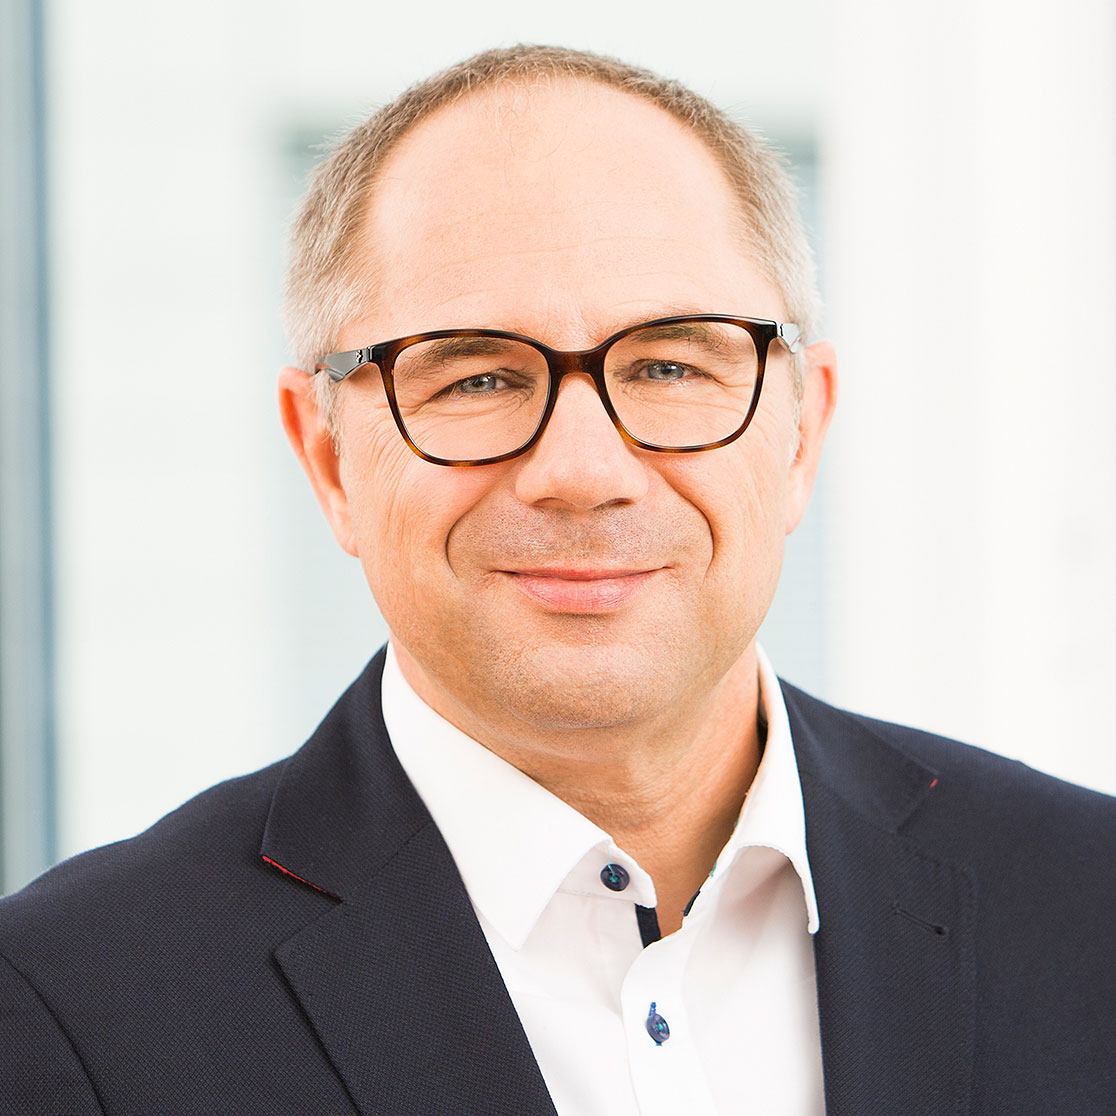 Christian Gronwald ist Leiter Management Building Lifecycle bei Kieback&Peter